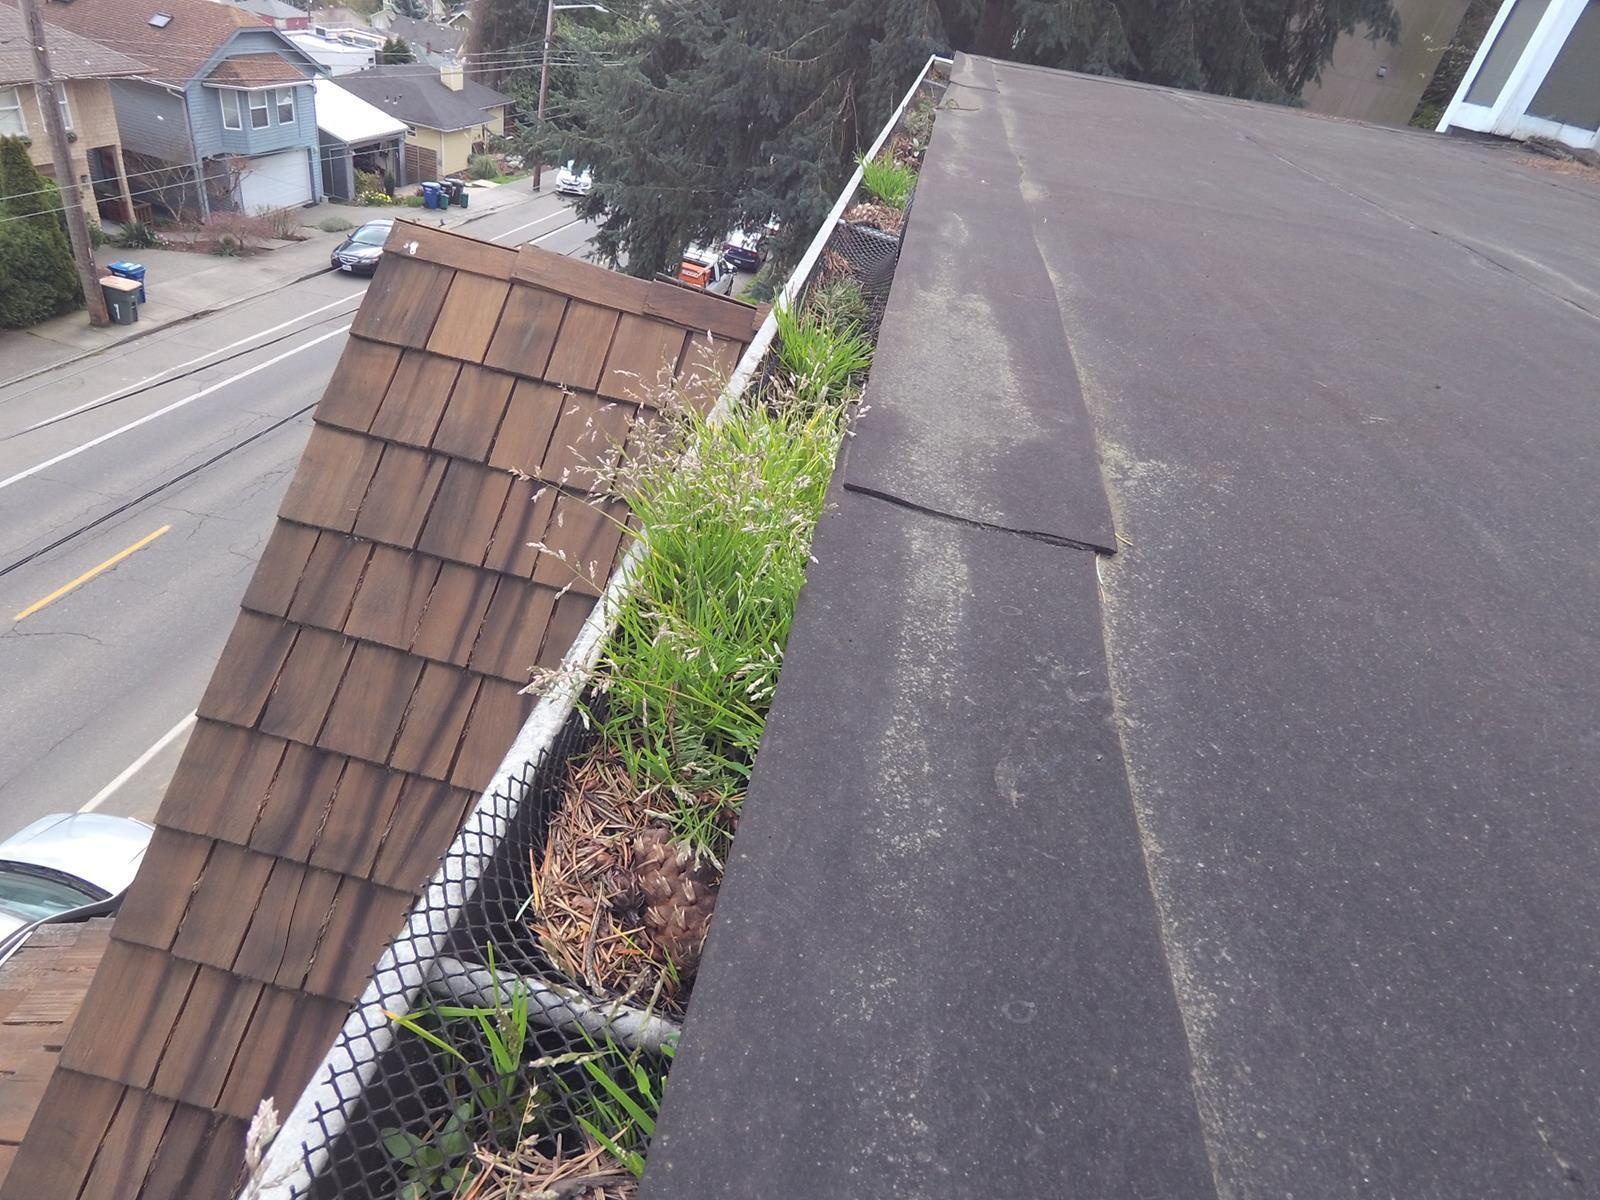 Flat area of roof with DIY gutter guards